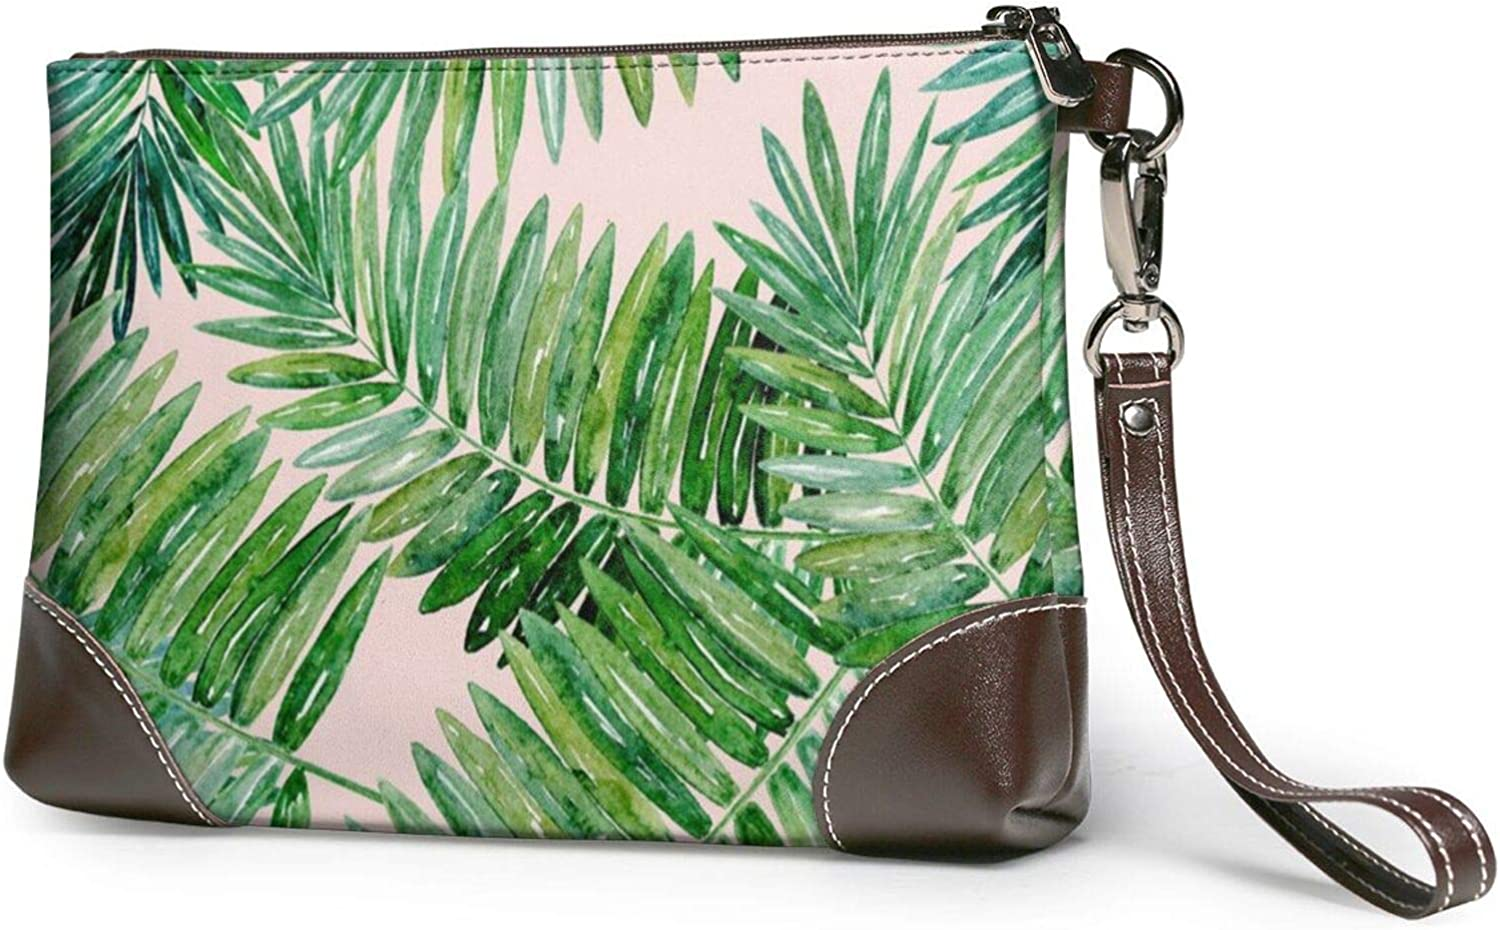 Palm Tree Leaves Printed Women'S Wristlet Handbags Purses Wallets Evening Leather Clutch Bags 8in X 5.5in X 1.5in